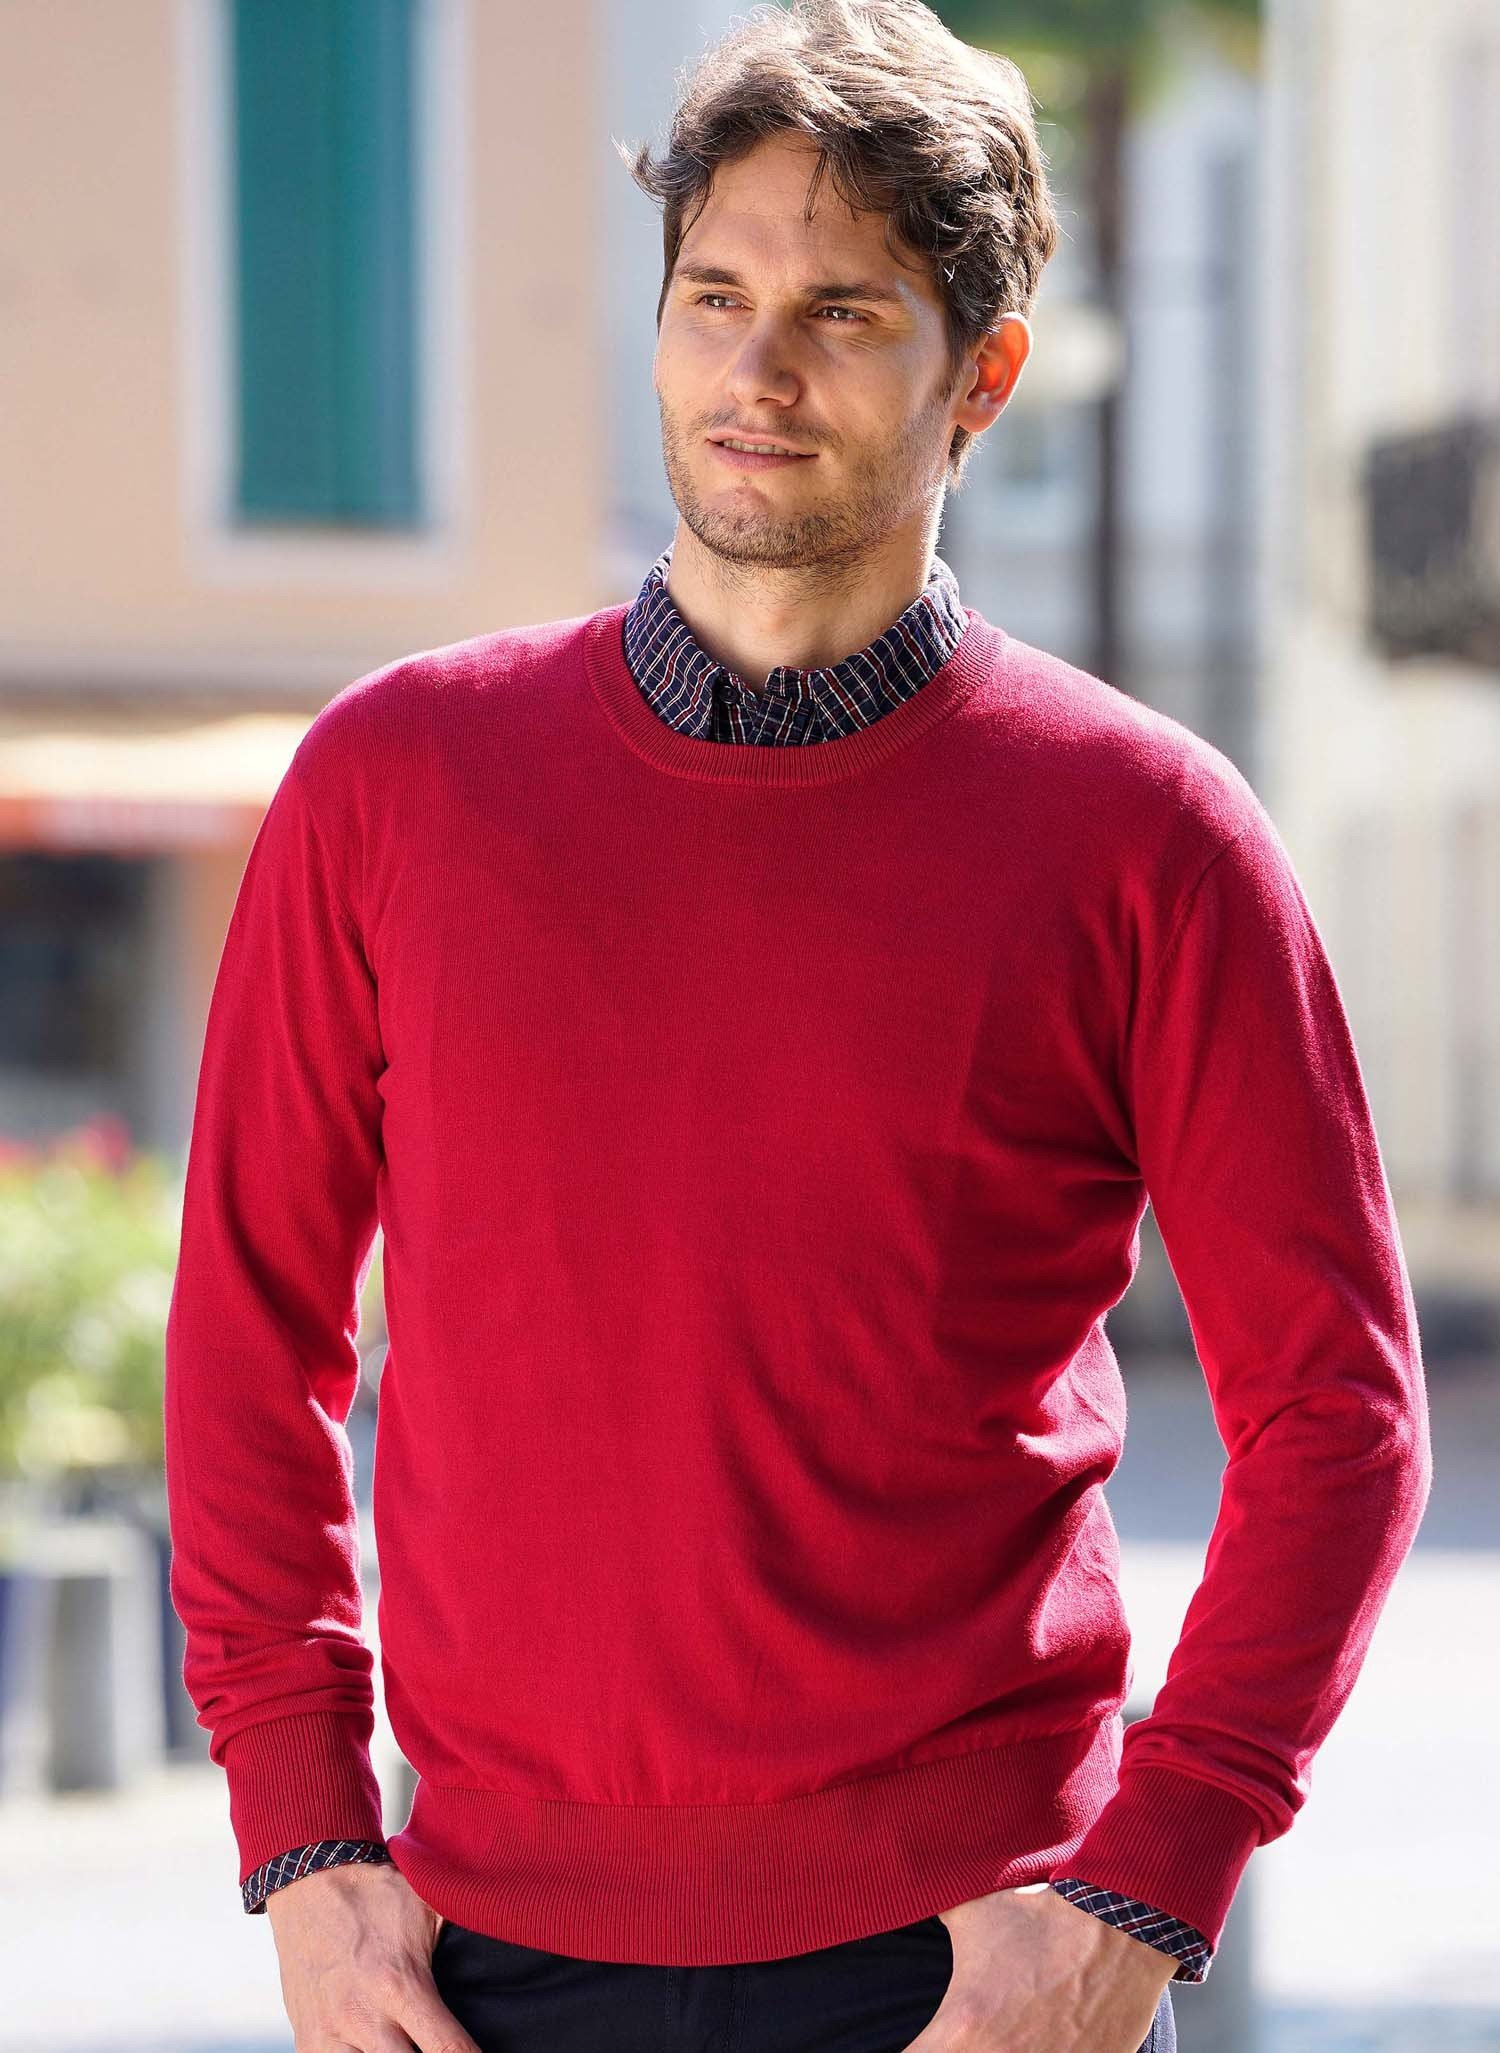 H-LA-Pullover,Rundh.dunkelrot L 335 - 1 - Ronja.ch